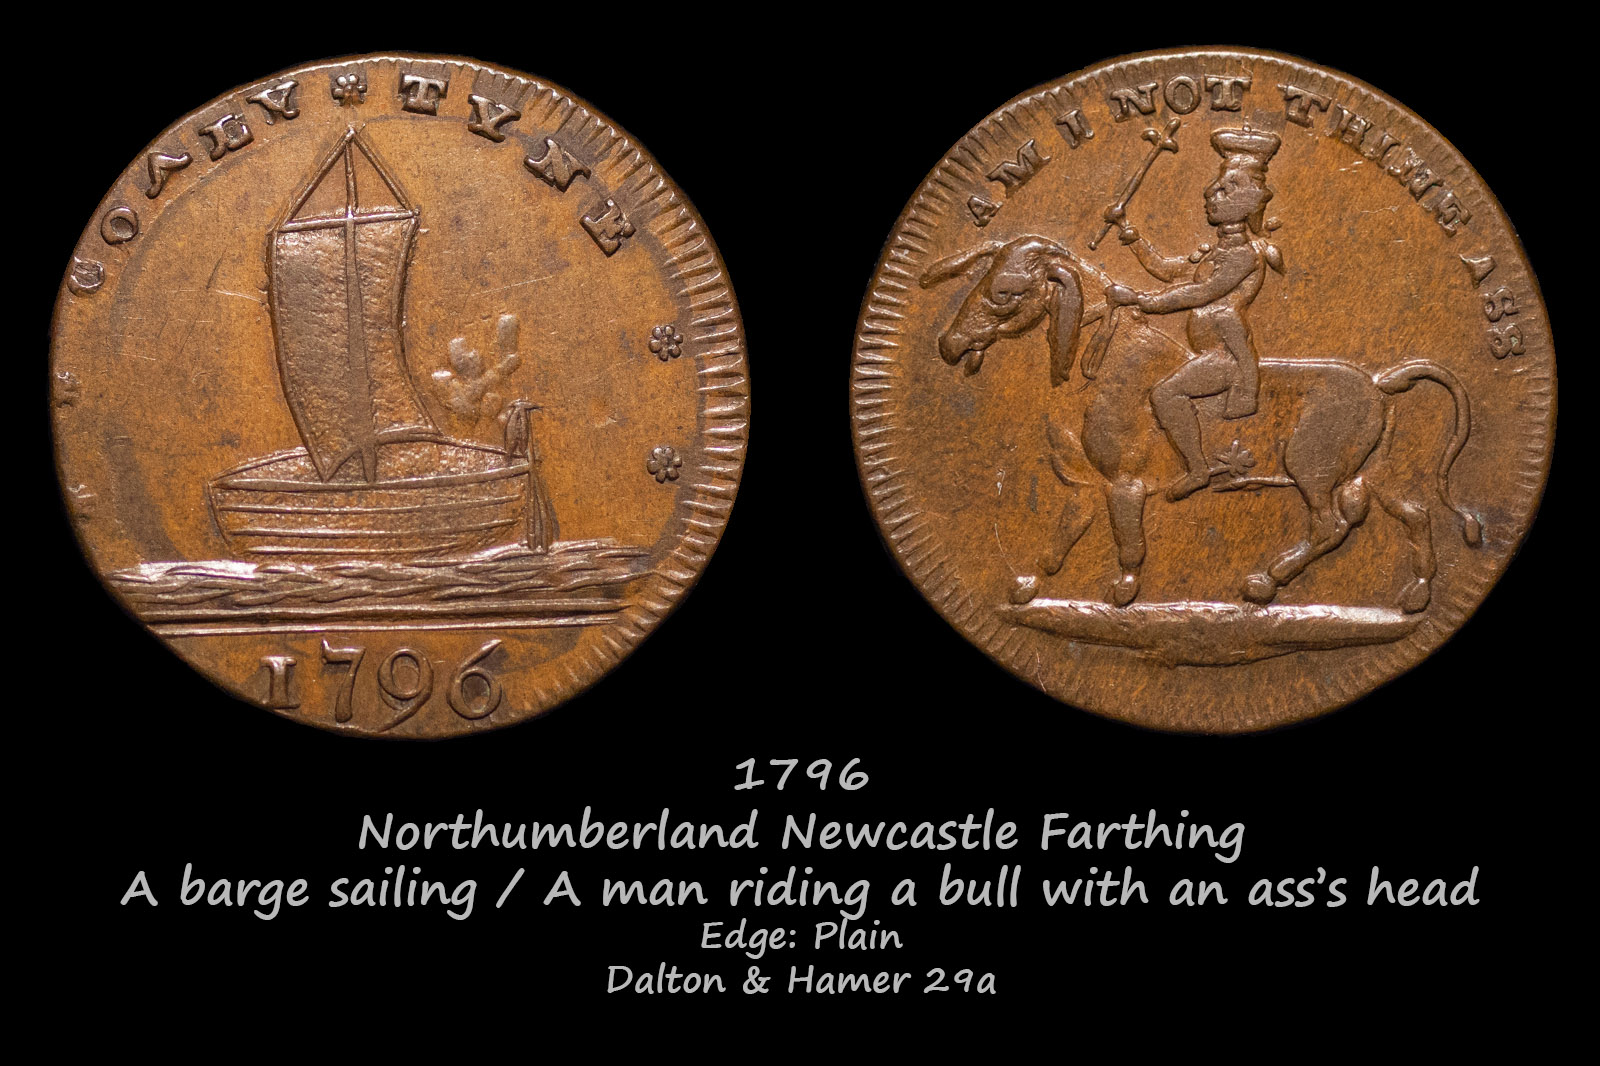 Northumberland Newcastle Farthing D&H29a